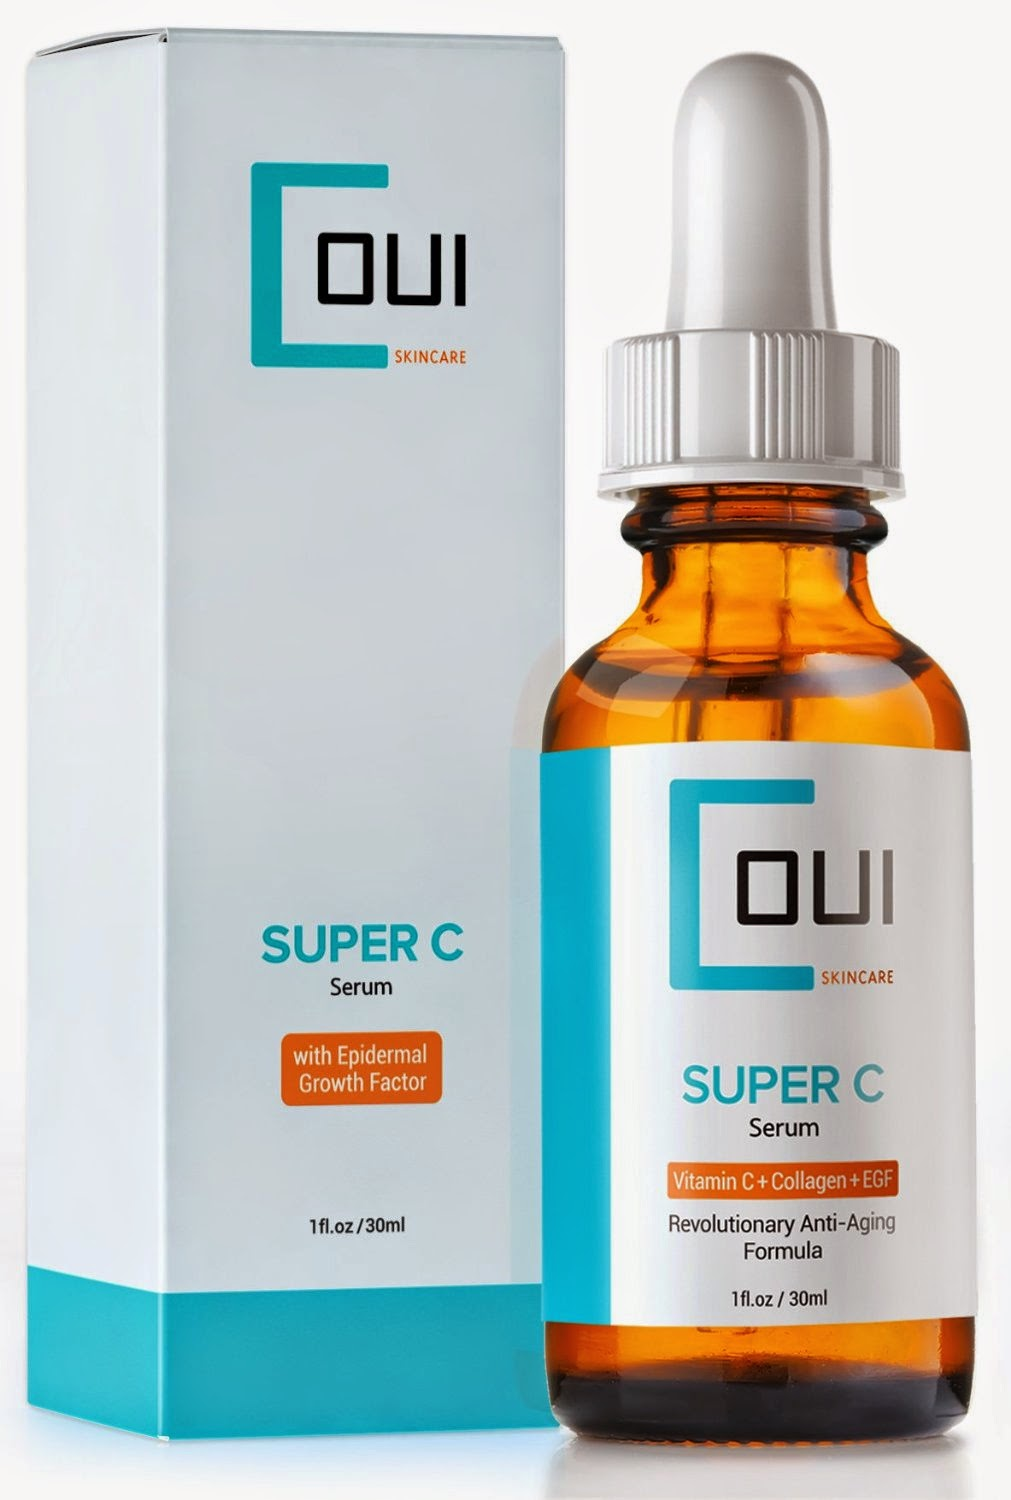 COUI Skincare Super C Serum.jpeg